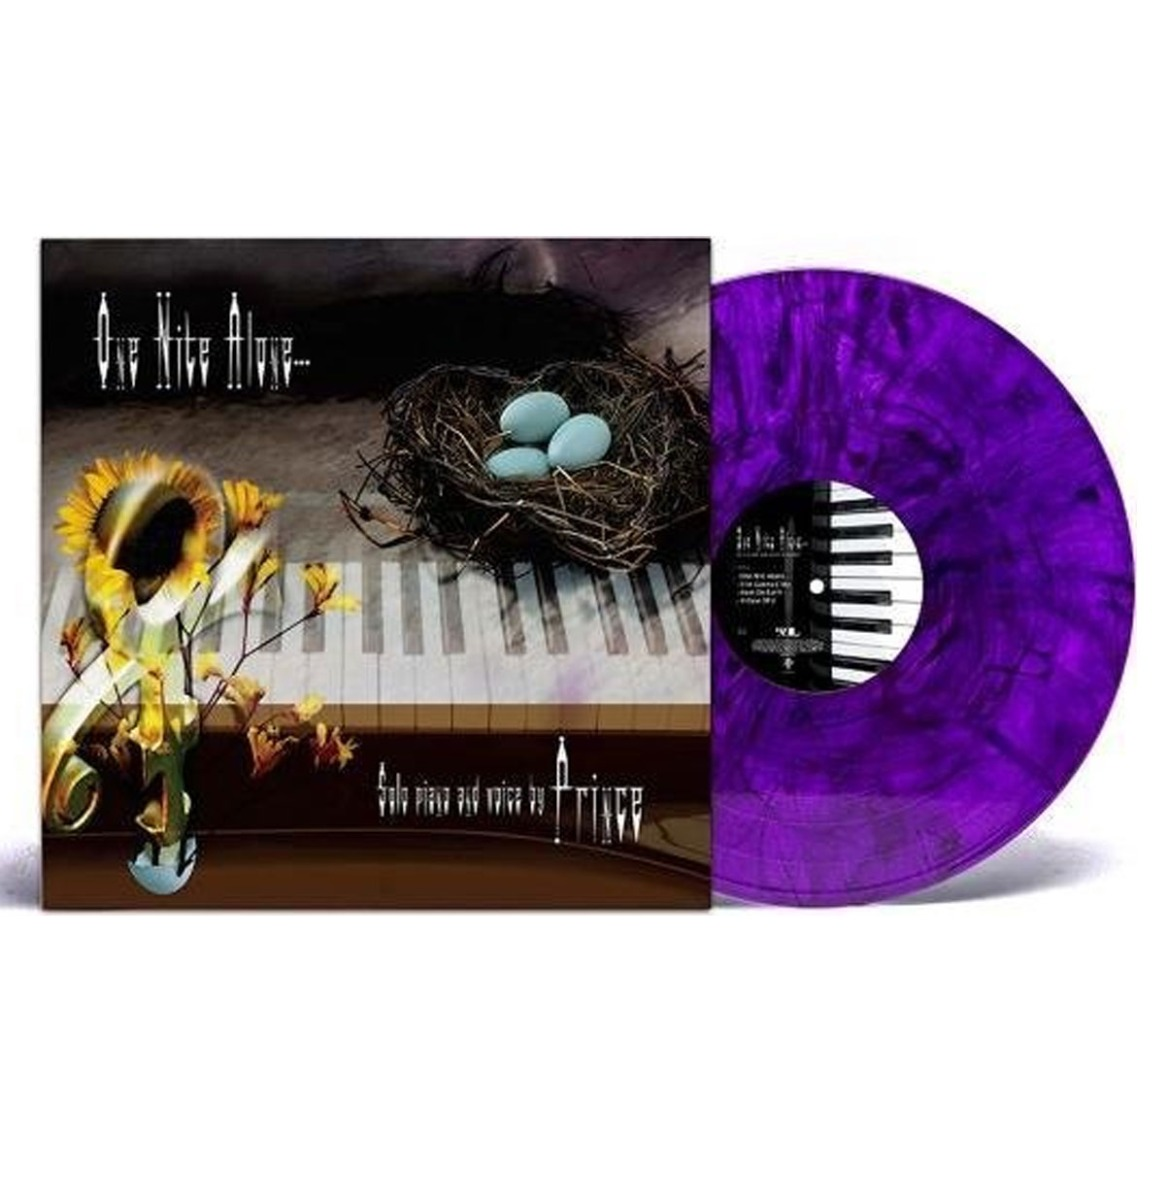 Prince - One Nite Alone (Solo Piano And Voice By Prince) LP - Paars Vinyl